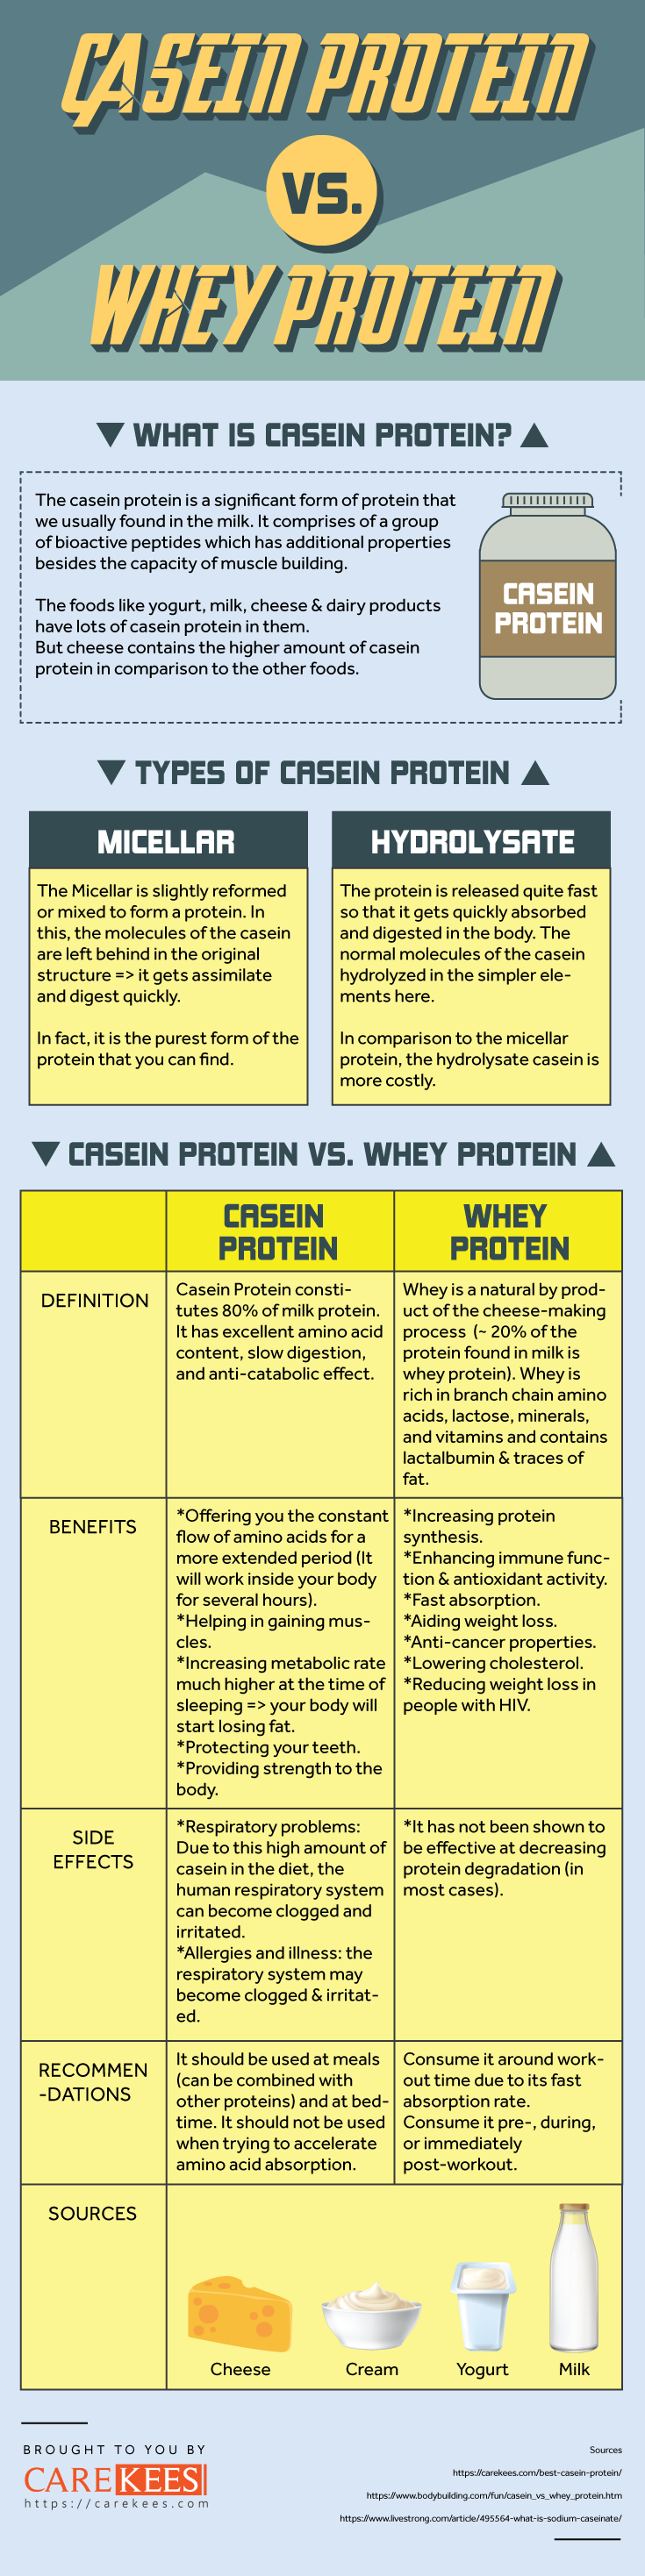 Find Out The Honest Reviews Of The Best Casein Protein Here